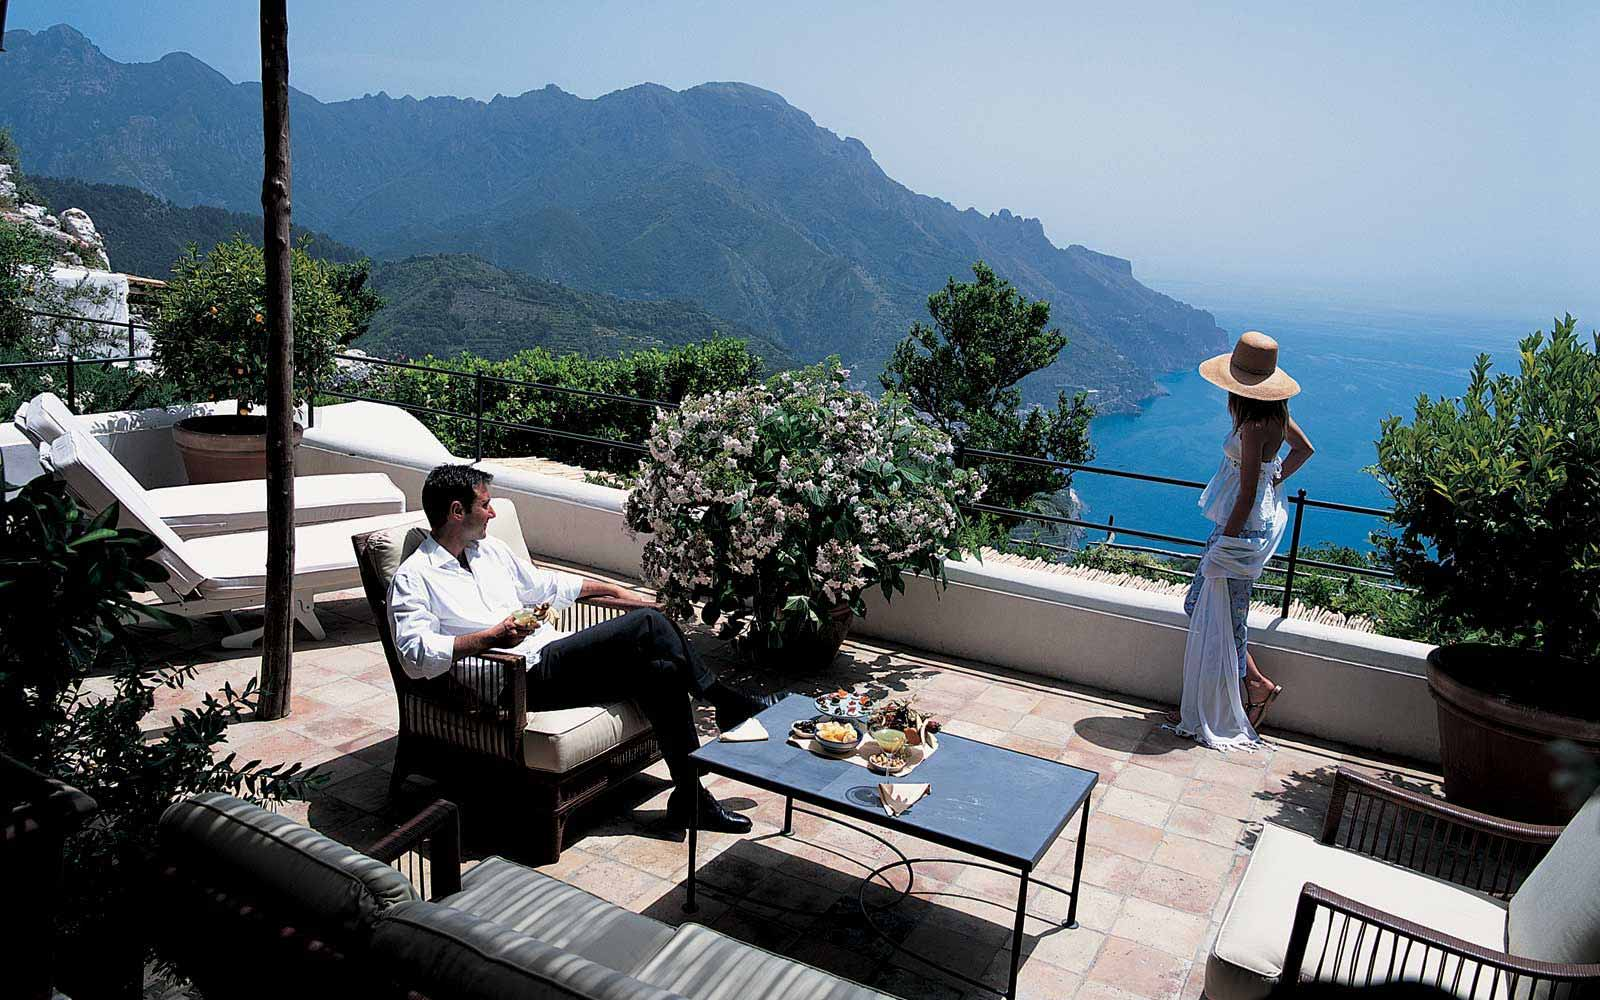 Terrace of Exclusive Suite at Belmond Hotel Caruso